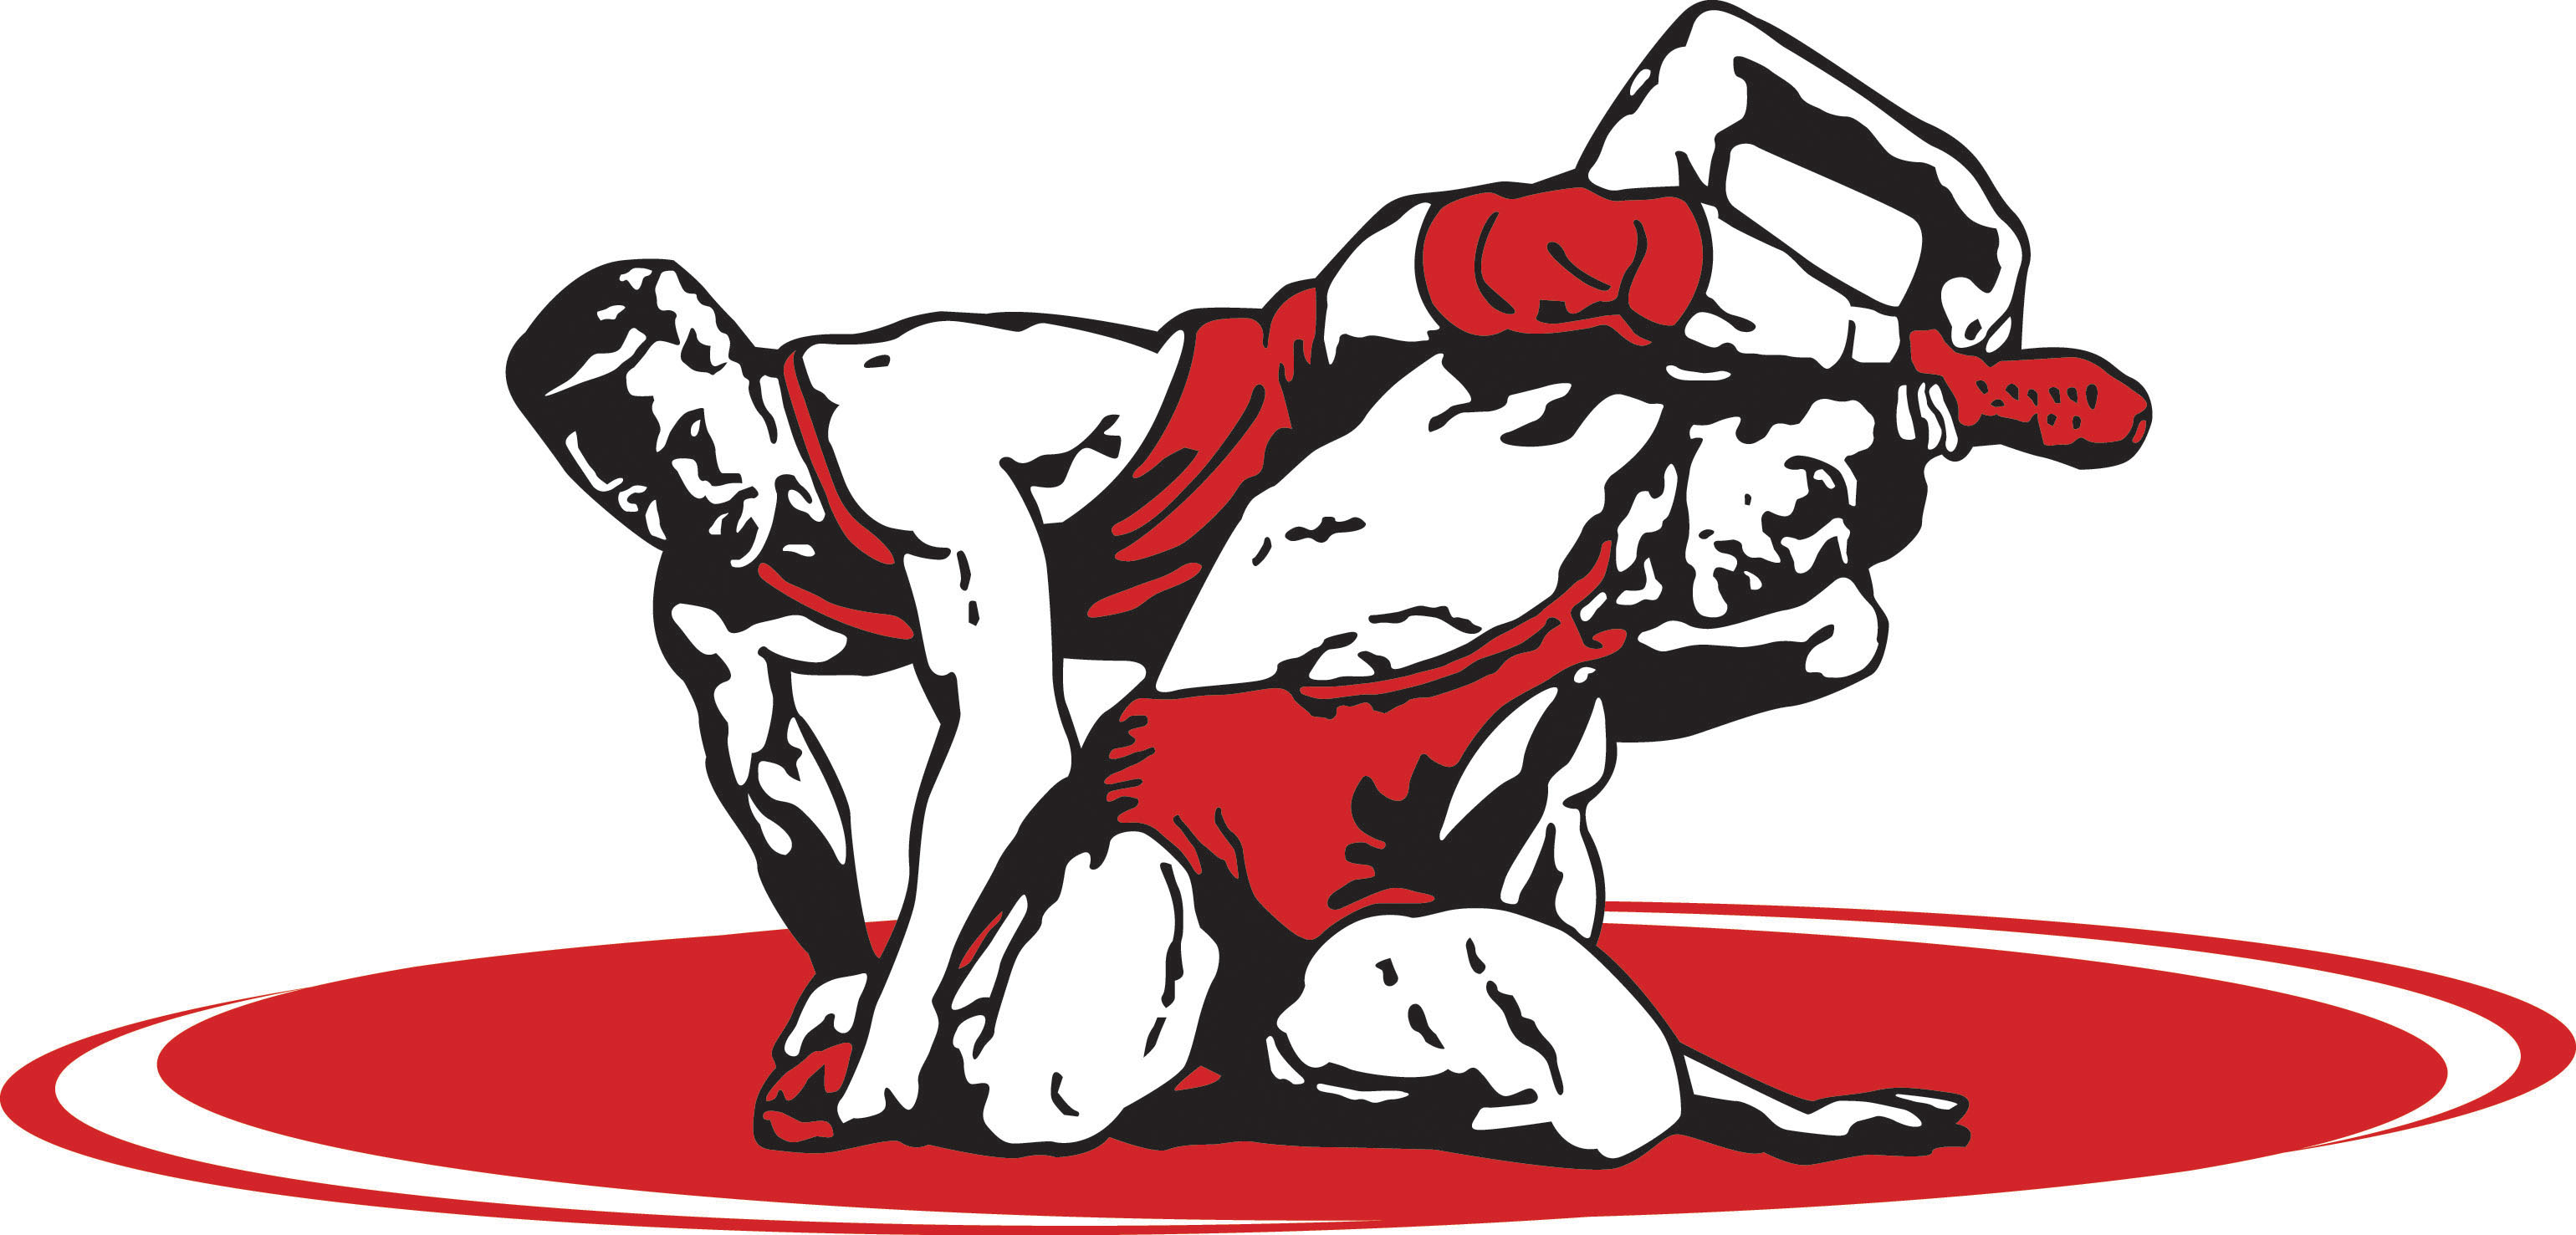 High School Wrestler Clipart.